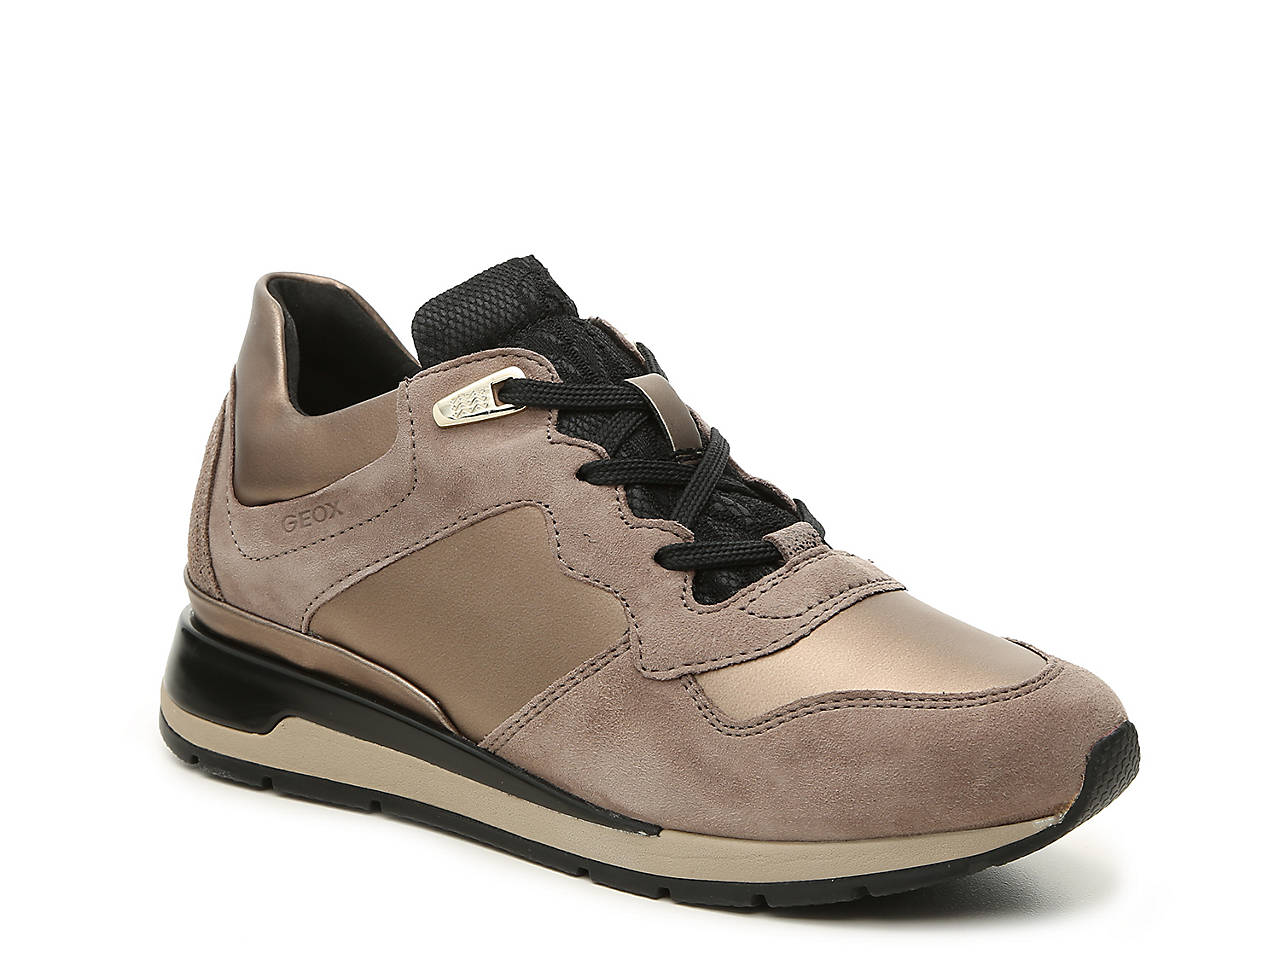 finishline for sale Geox Shahira sneakers cheap sale sale clearance recommend gfeMhQv4Q7